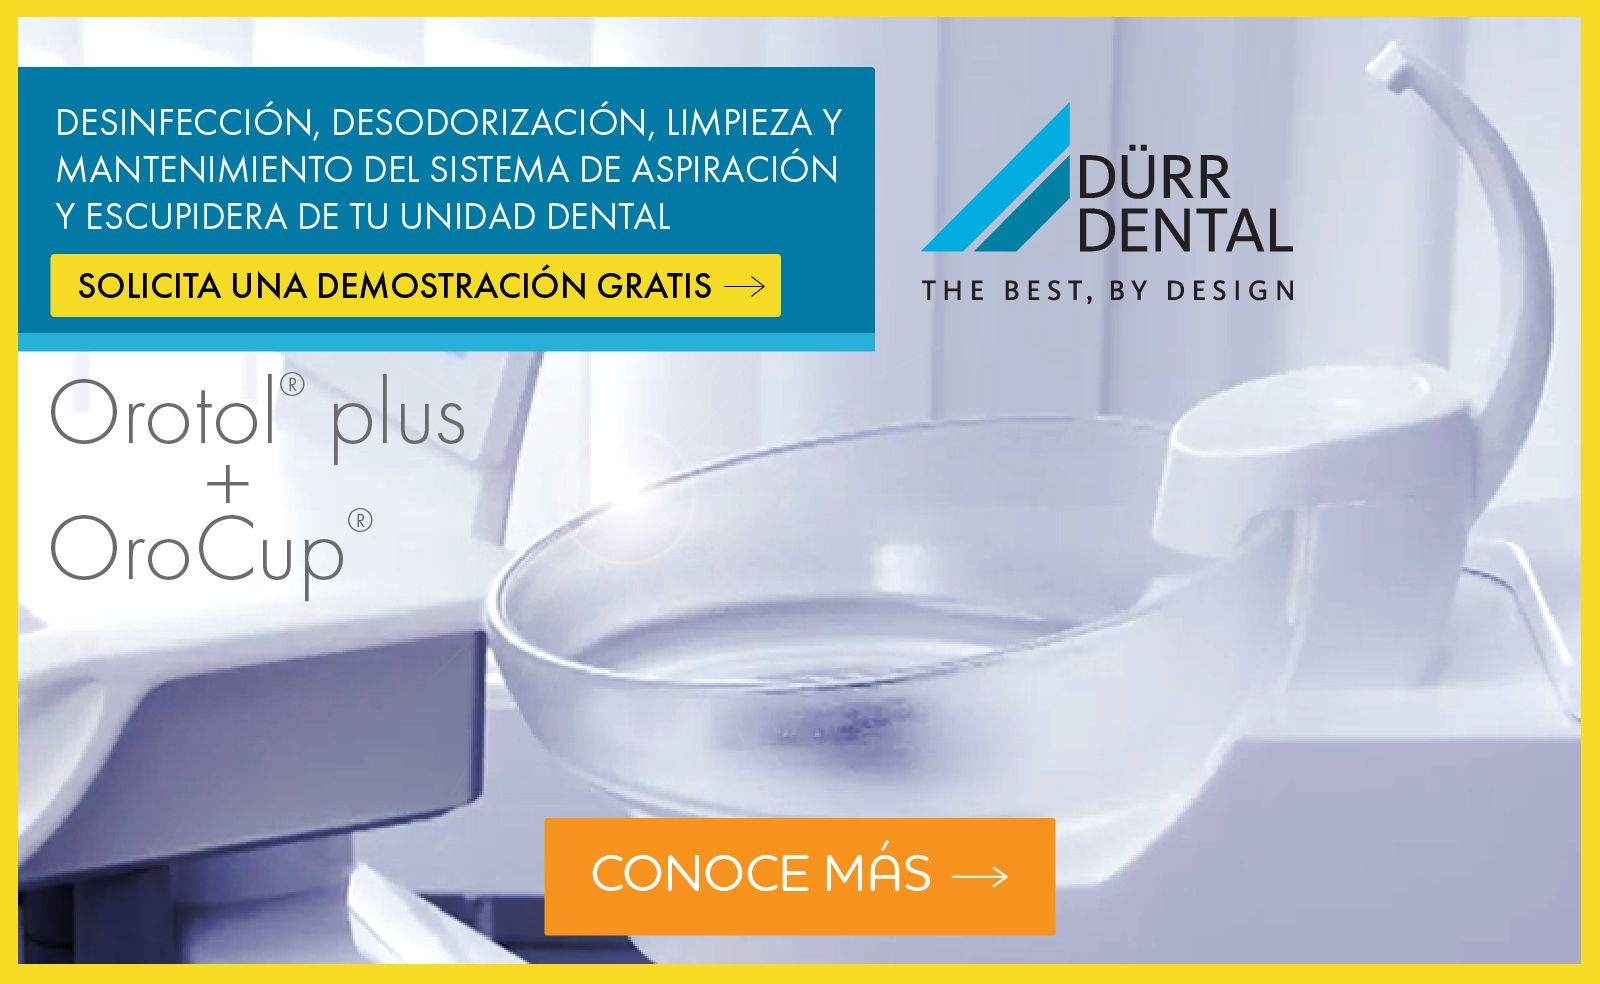 Sistema Orotol + Orocup materiales dentales Home bannertesar regular copy 1